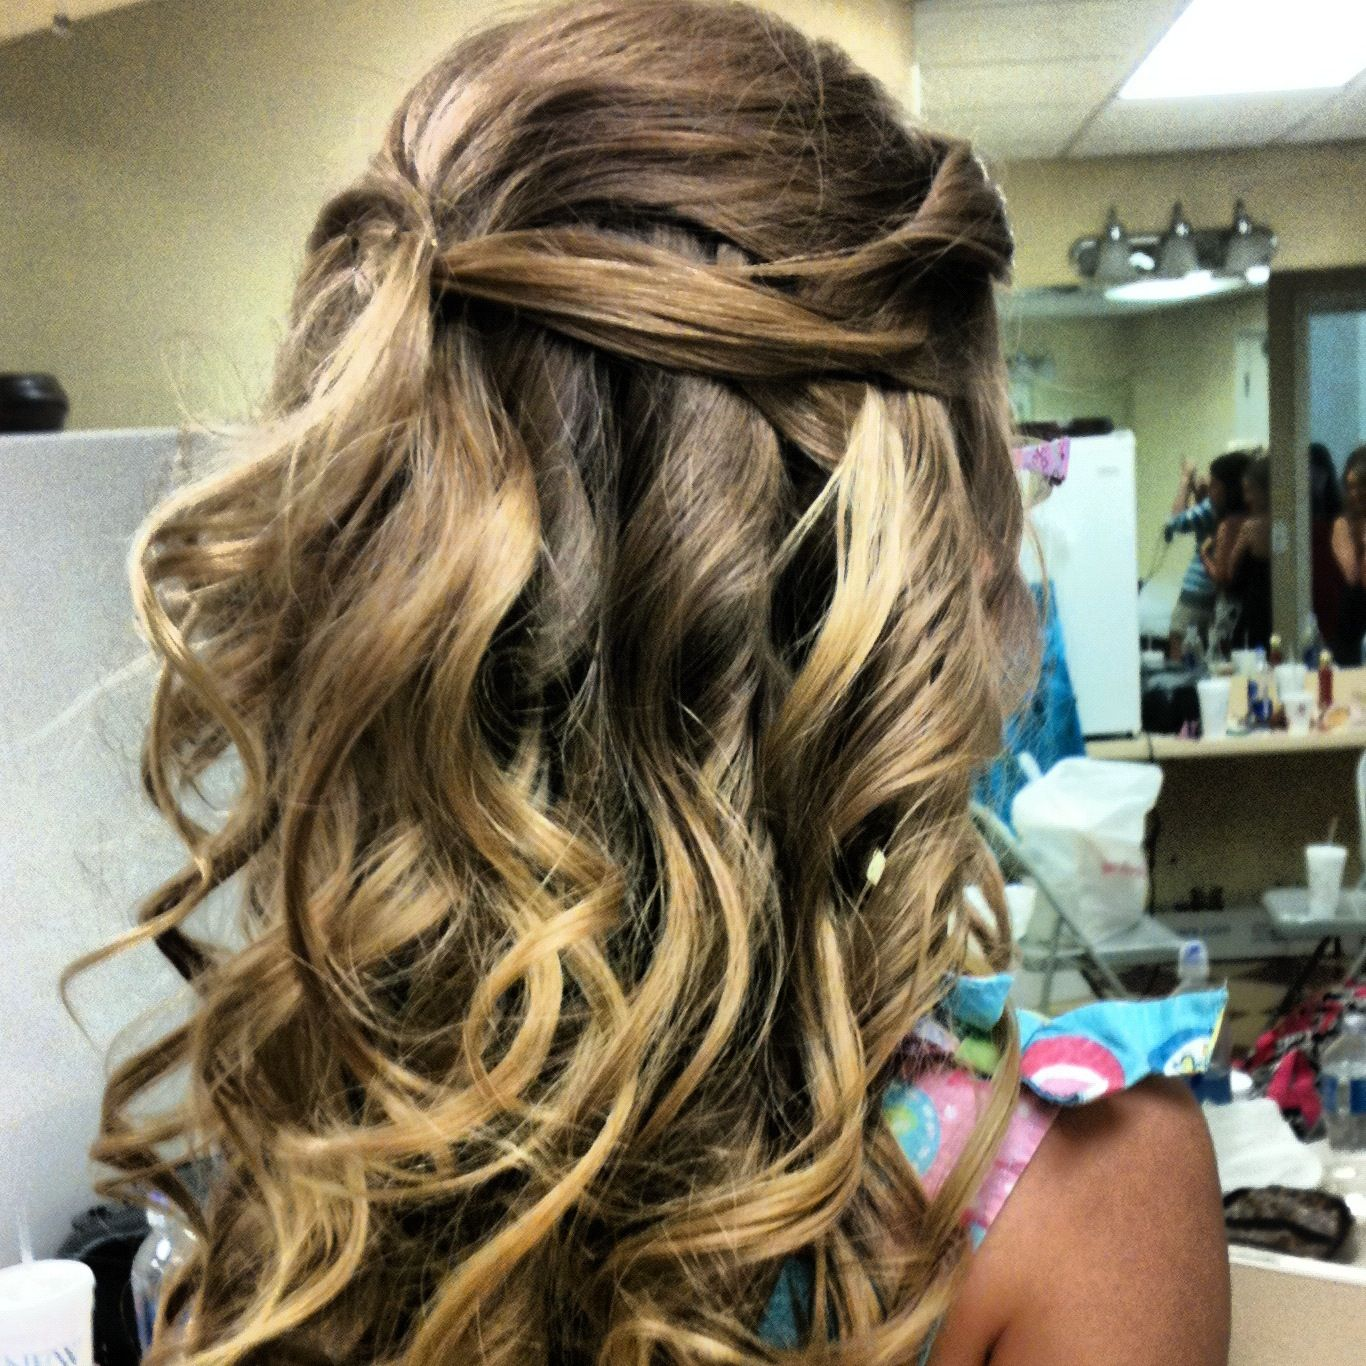 flower girl hair:) | my hair creations:) | pinterest | flower girl